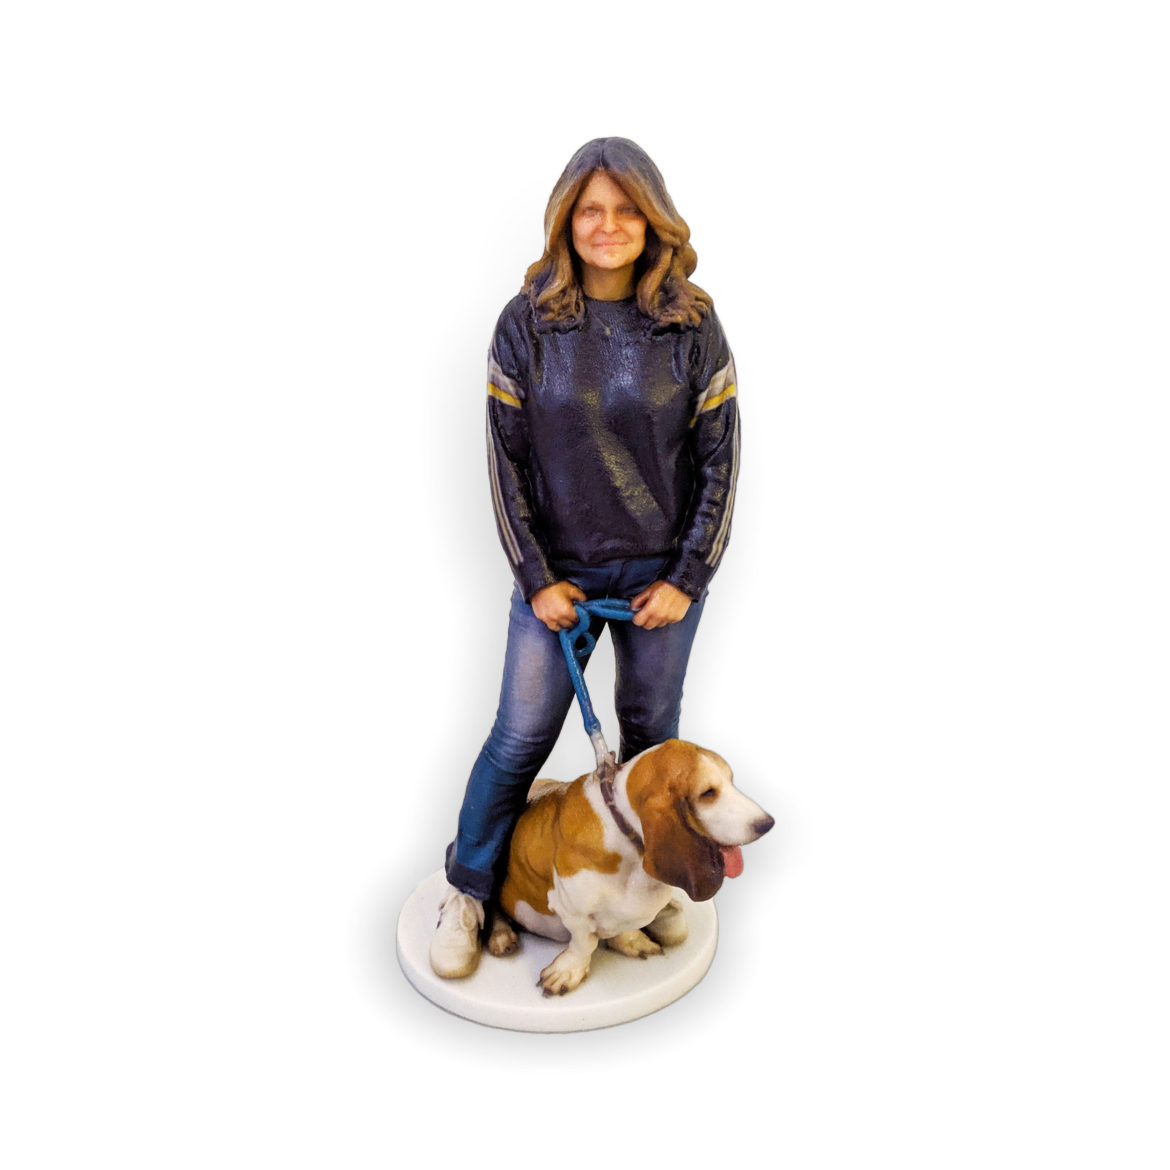 my3Dtwin, Figurine of a women with a dog on a blue leash